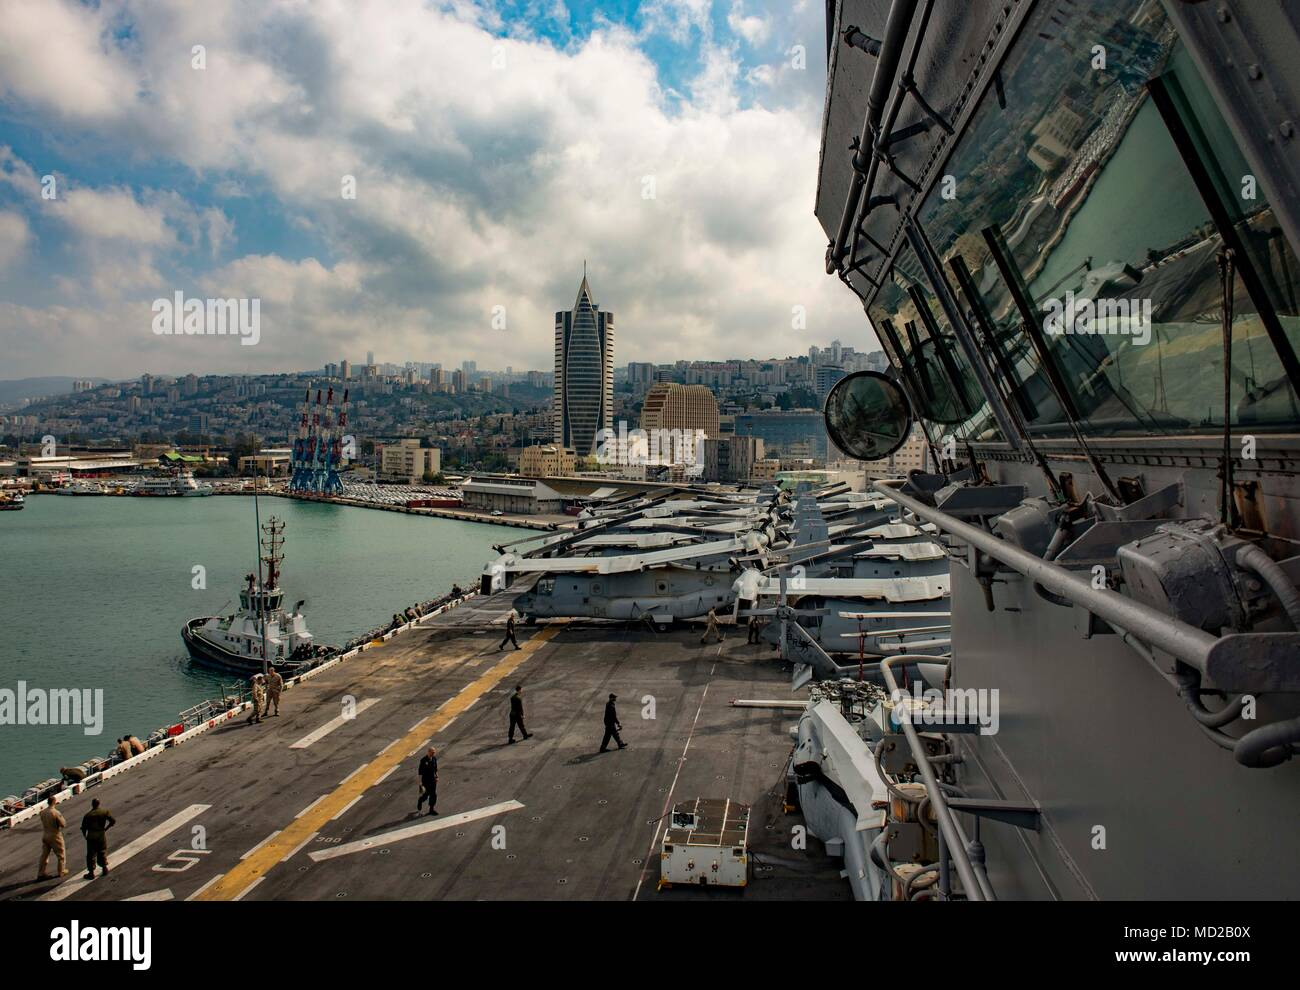 180314-N-JS726-0016 HAIFA, Israel (March 14, 2018) The Wasp-class amphibious assault ship USS Iwo Jima (LHD 7) arrives in Haifa, Israel. Iwo Jima is homeported in Mayport, Fla., and is conducting naval operations in the U.S. 6th Fleet area of operations. (U.S. Navy photo by Mass Communication Specialist 1st Class David Holmes/Released) Stock Photo